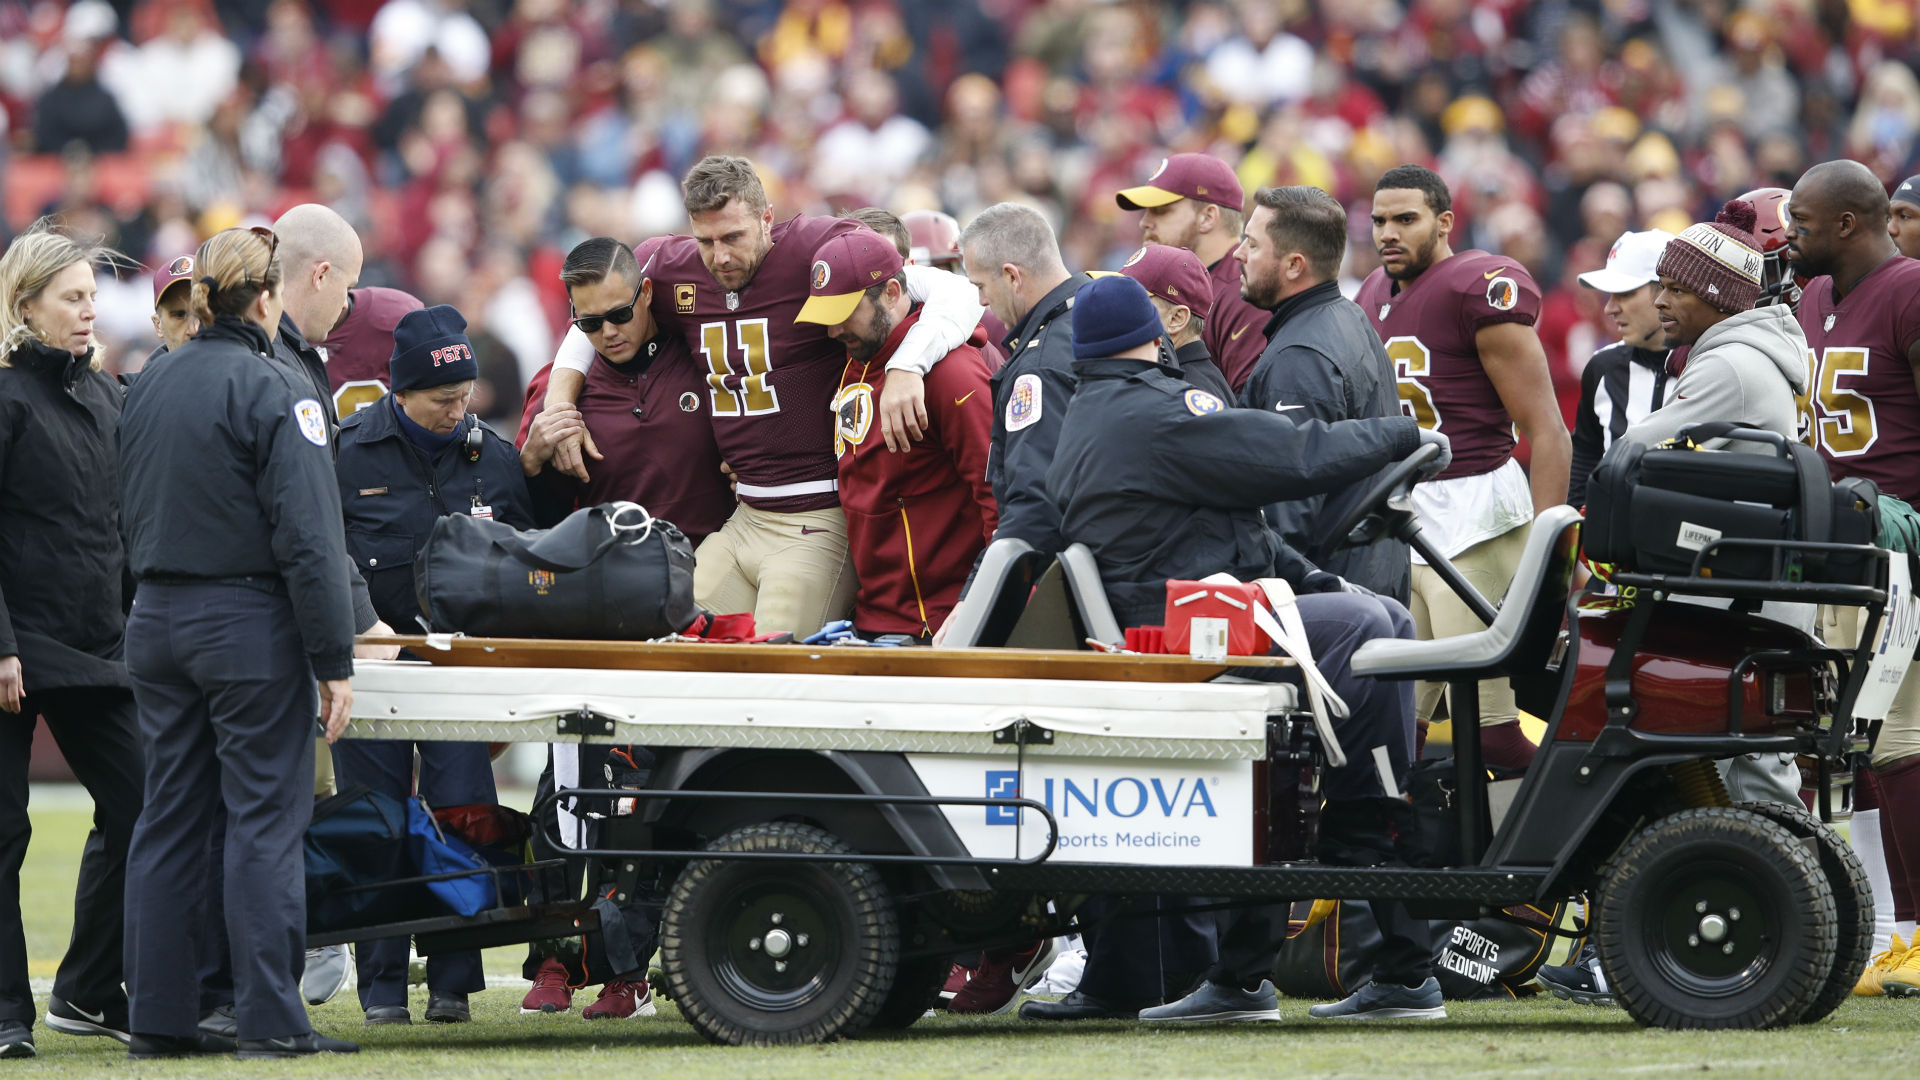 Alex Smith out of hospital after scary complications